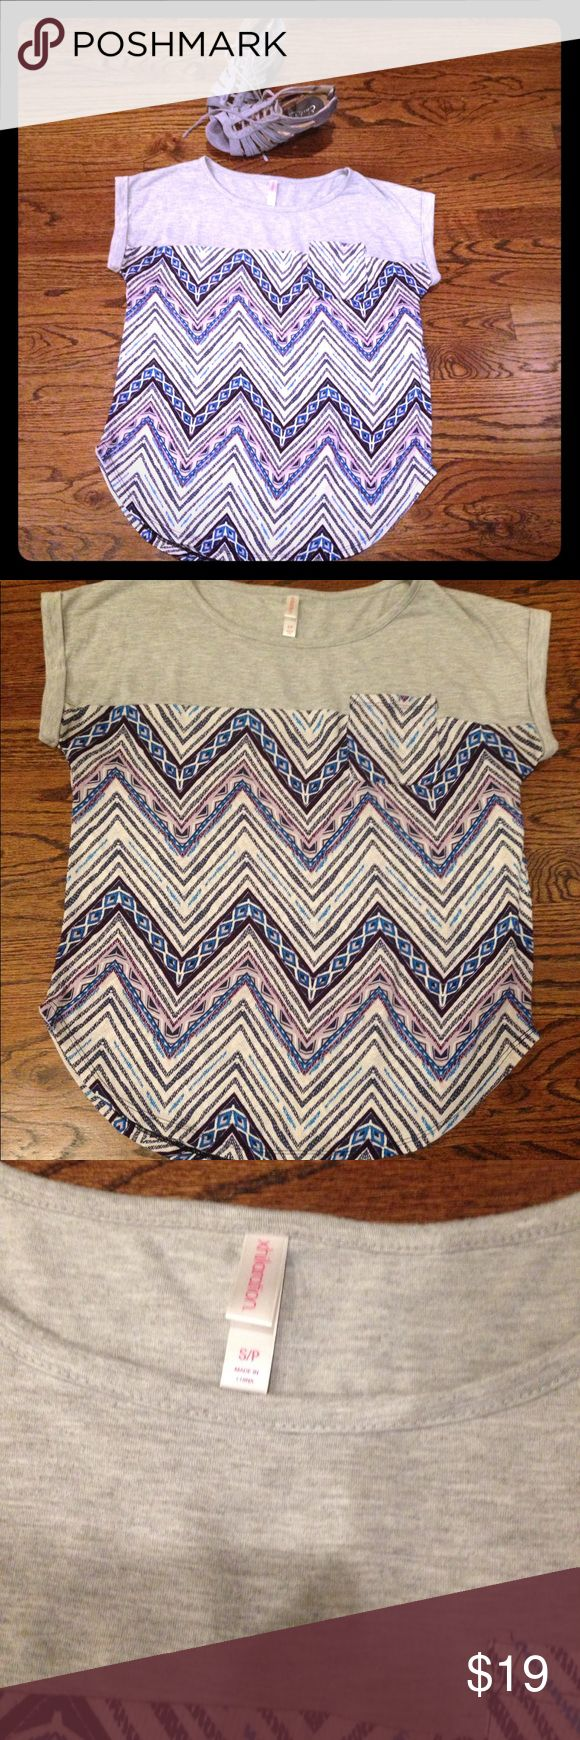 Xhilaration Chevron Pocket Shirt 👚 Trendy blue/lavender/white chevron shirt with front pocket. Sleeves are stitched for a folded look. Upper portion: 65% Polyester/35% Rayon  Lower portion: 💯 % polyester. So comfortable and light weight. Purchased it but it's too small. NWOT Xhilaration Tops Tees - Short Sleeve